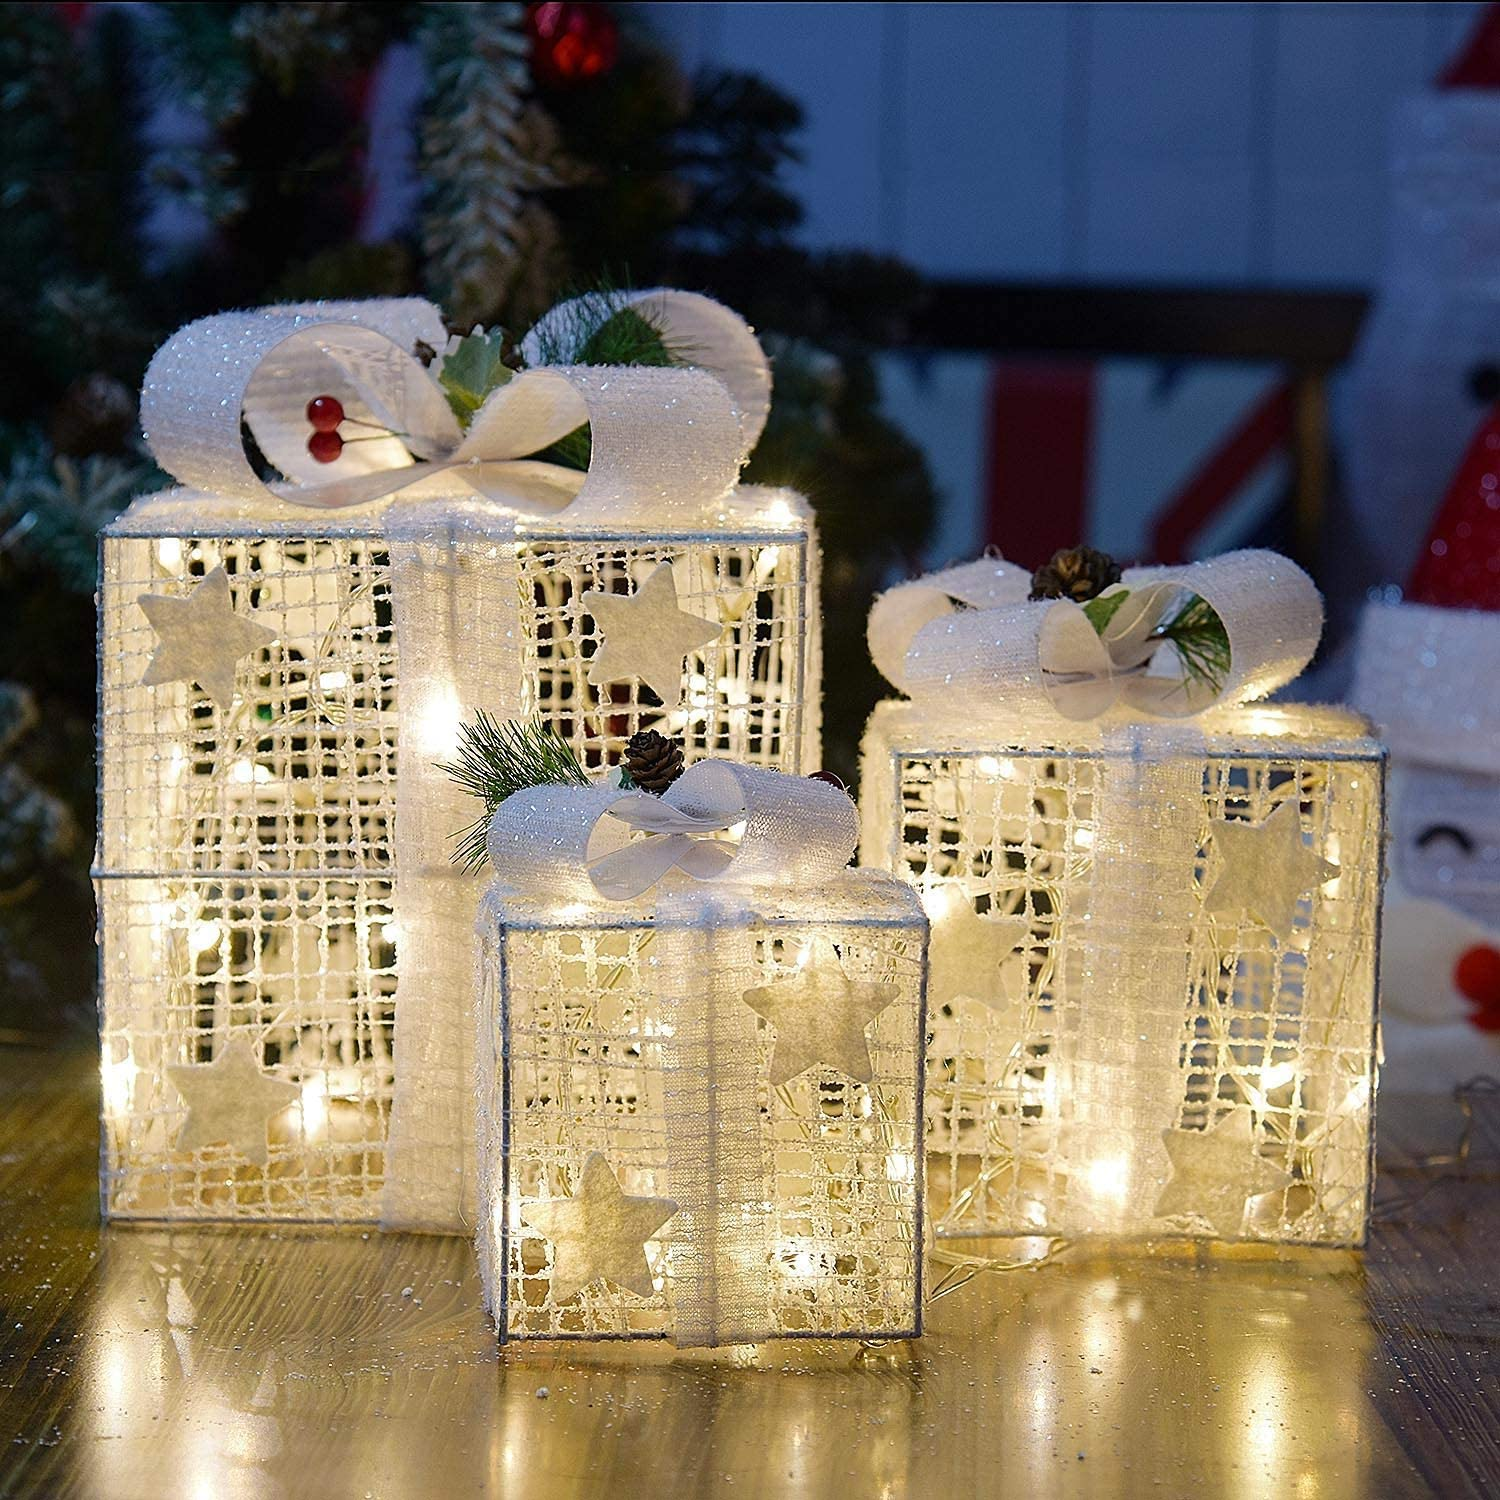 KPROE Set of 3 Christmas Lighted White Silver Gift Boxes Decor Yard Home